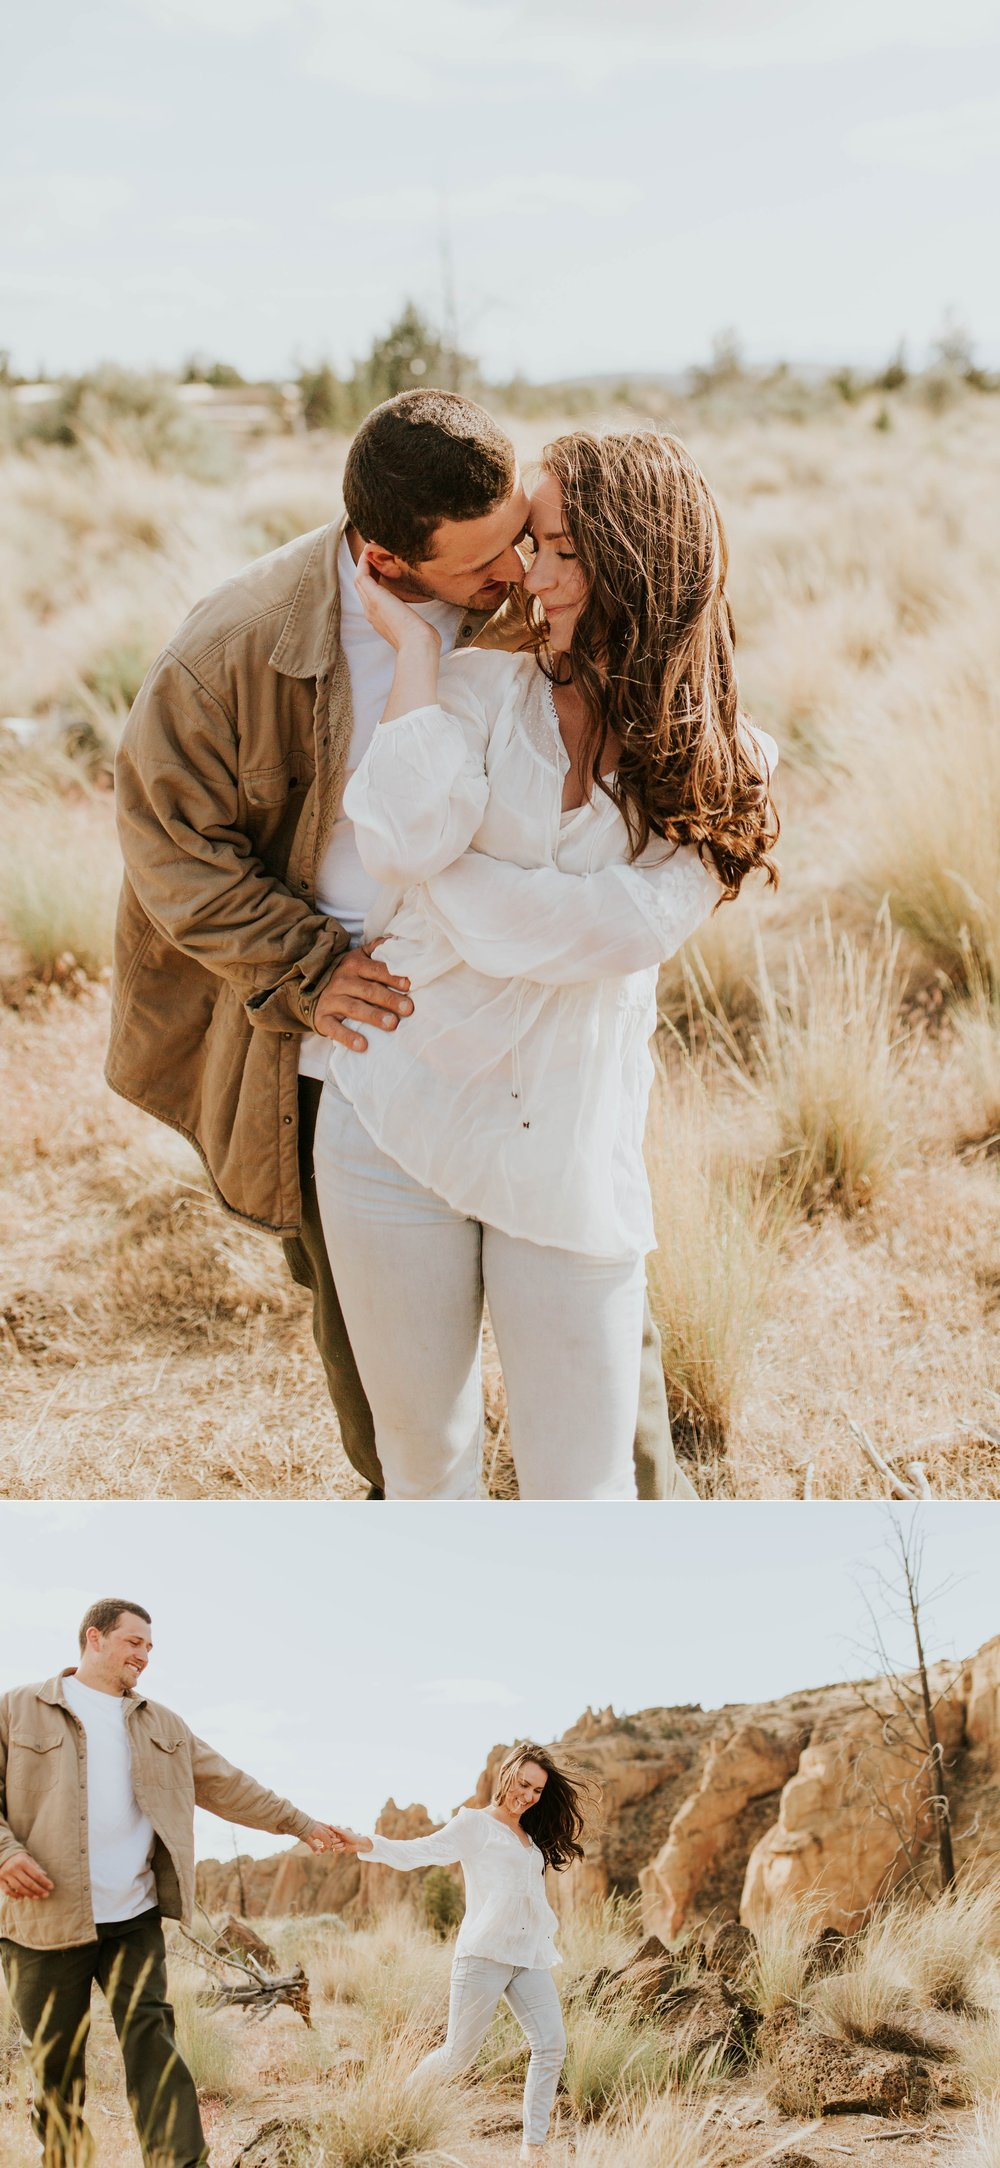 ThroughVictoriasLens_SmithRock_Engagements1.jpg